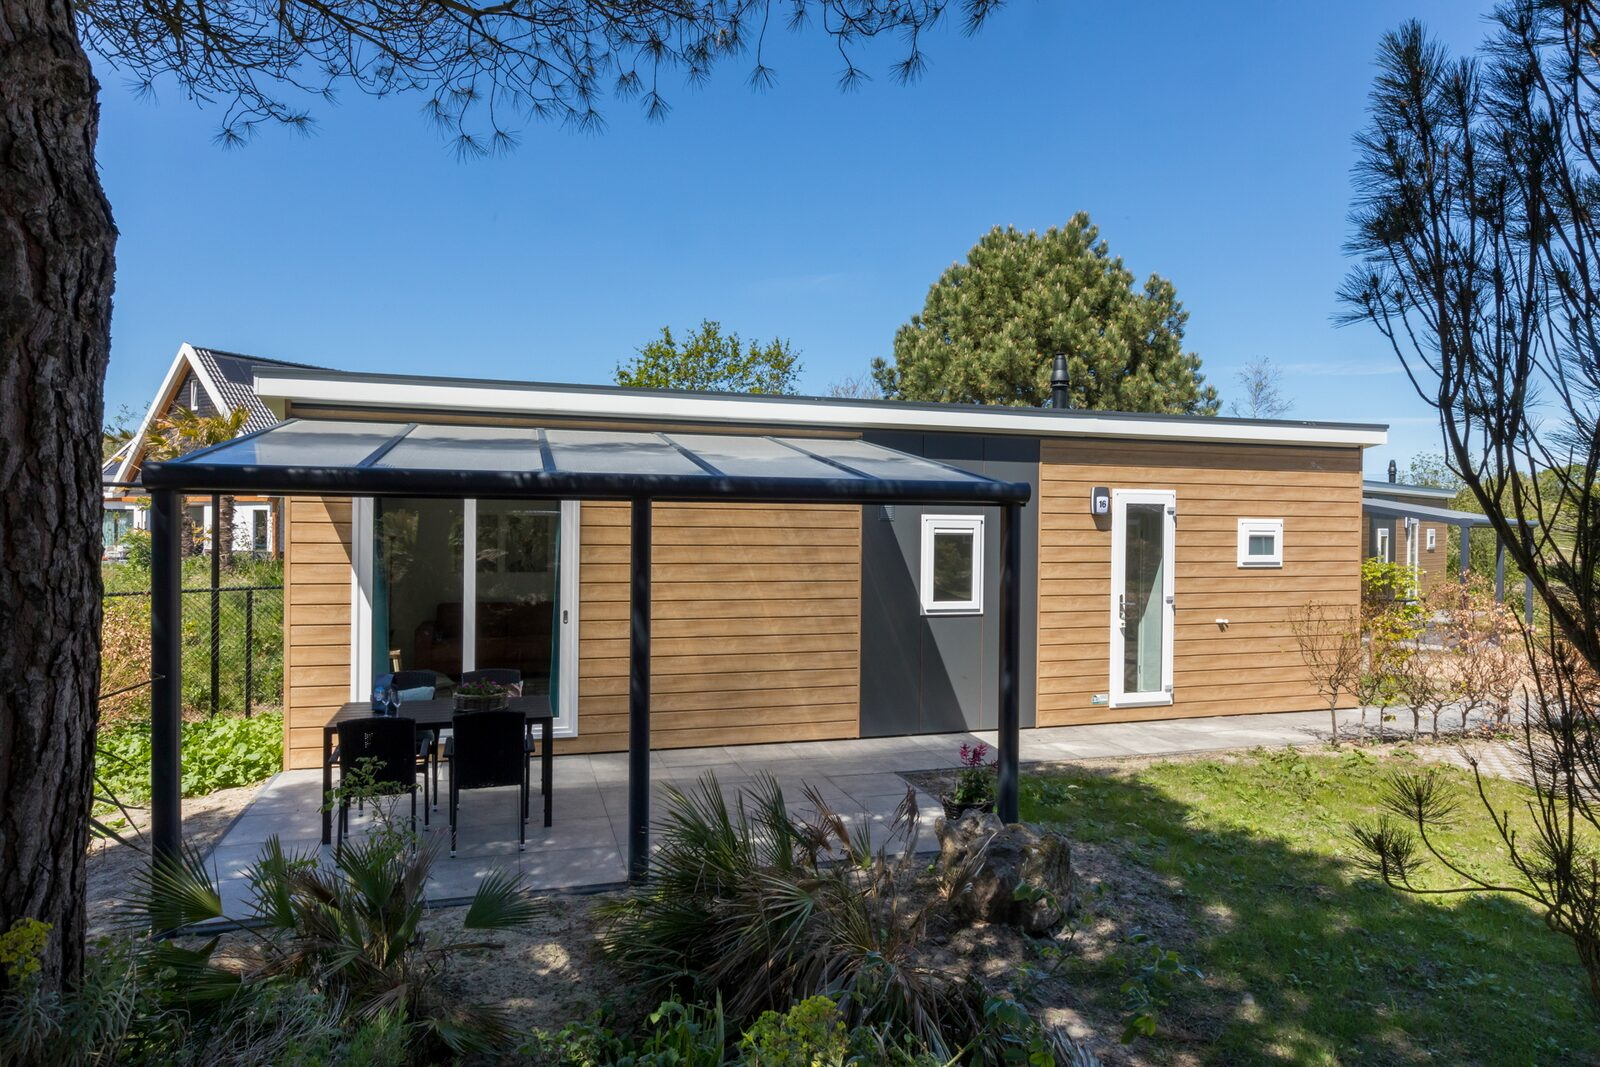 Chalet - Holidaypark Fort den Haak | Vrouwenpolder (Pet allowed)